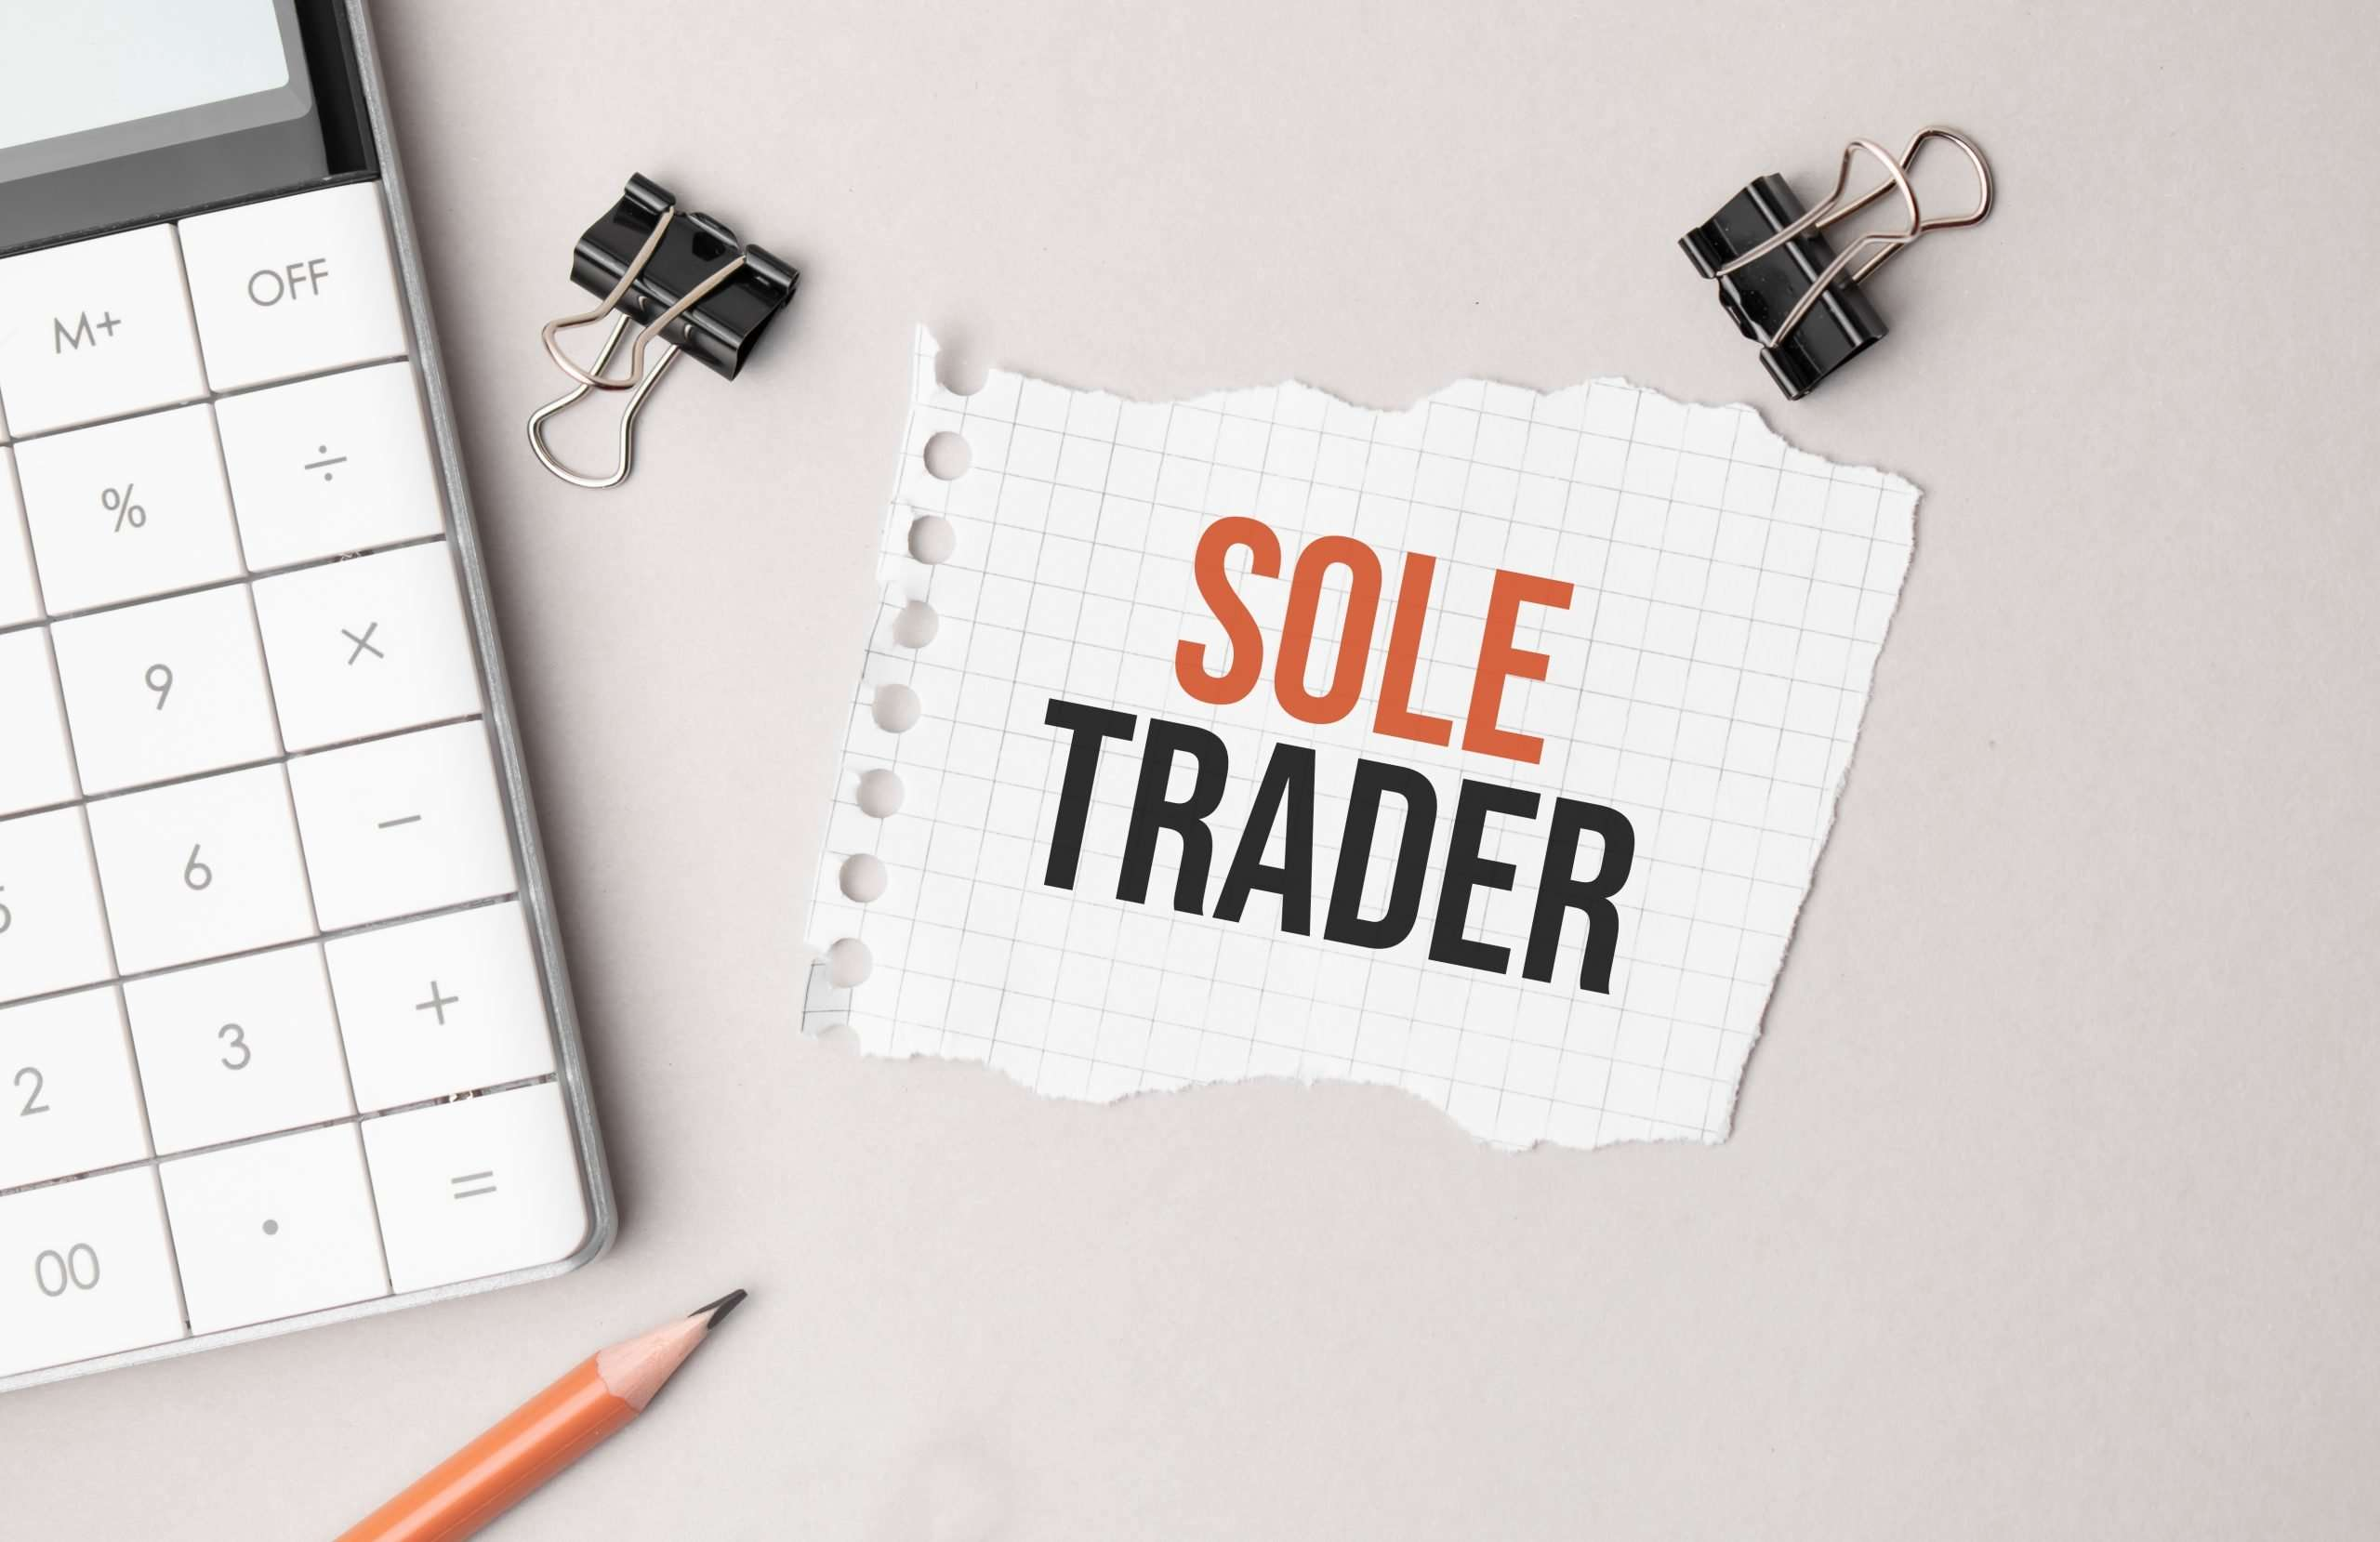 How can a sole trader raise finance?